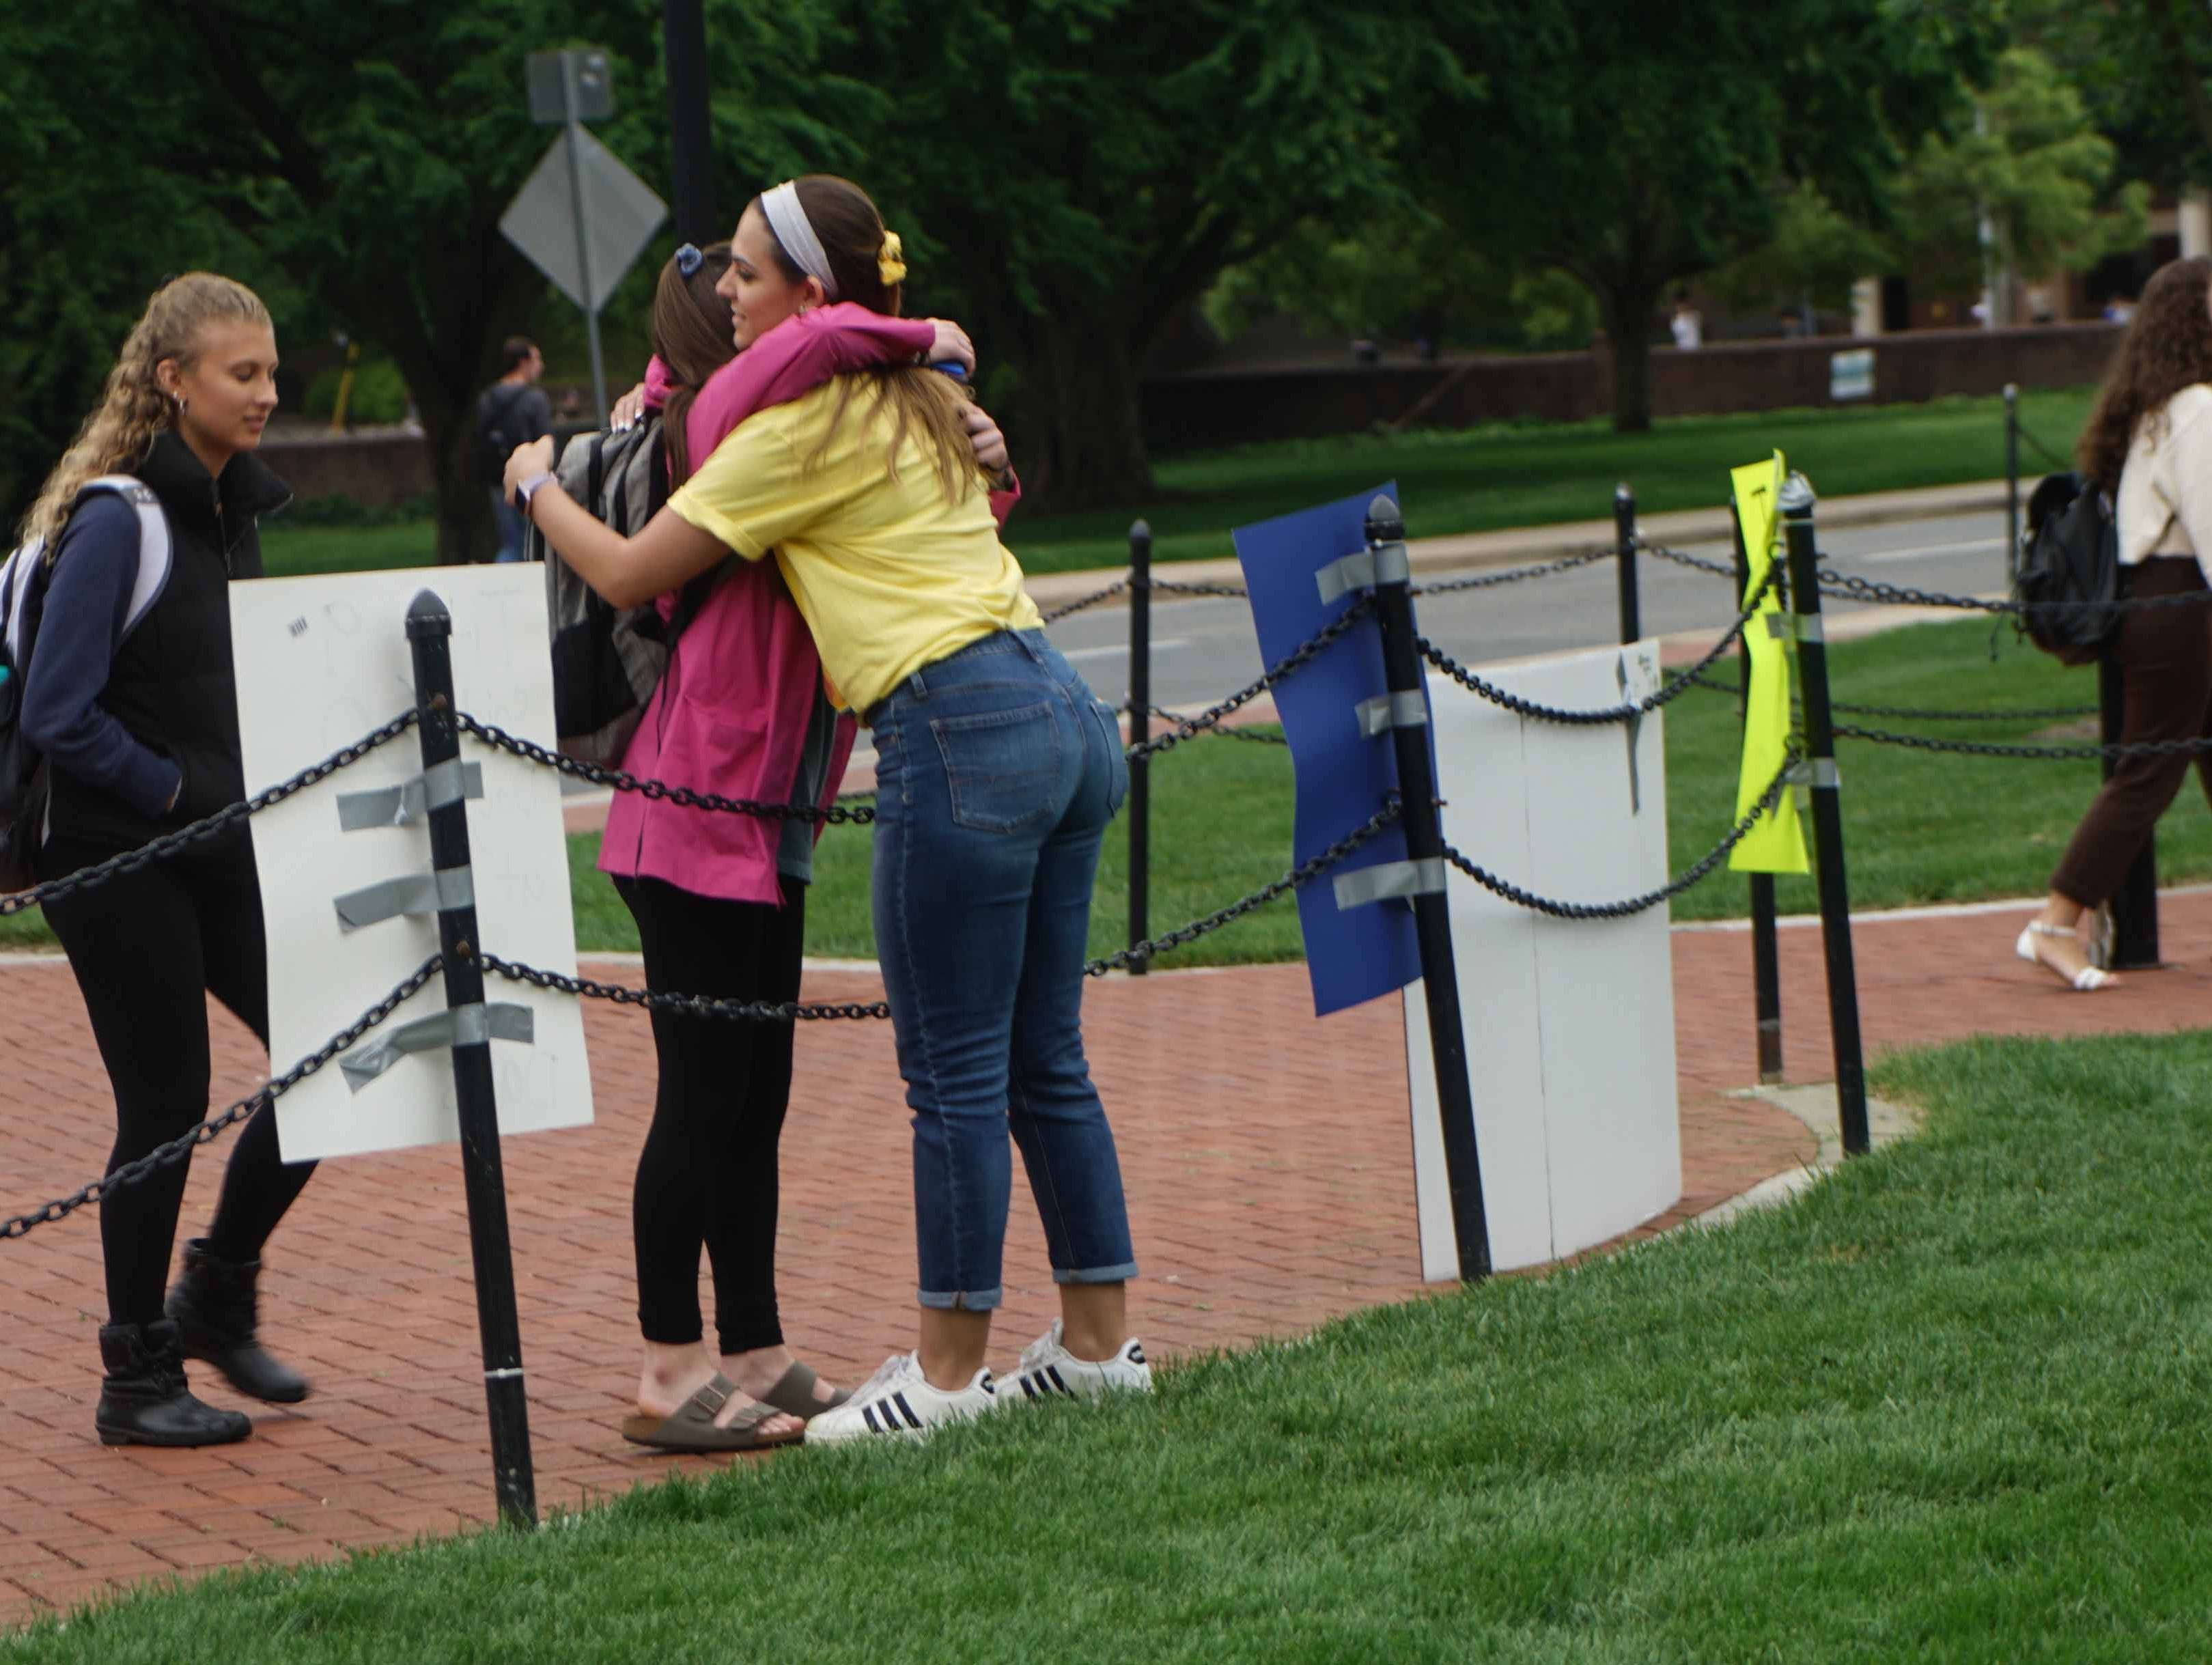 Alyvia Pauzer, 19, a sophomore at the University of Delaware, gets a hug from supporters passing by a silent protest that she held on the  university's Green Wednesday afternoon to bring attention to state prosecutors decision not to file charges in her sexual assault case.